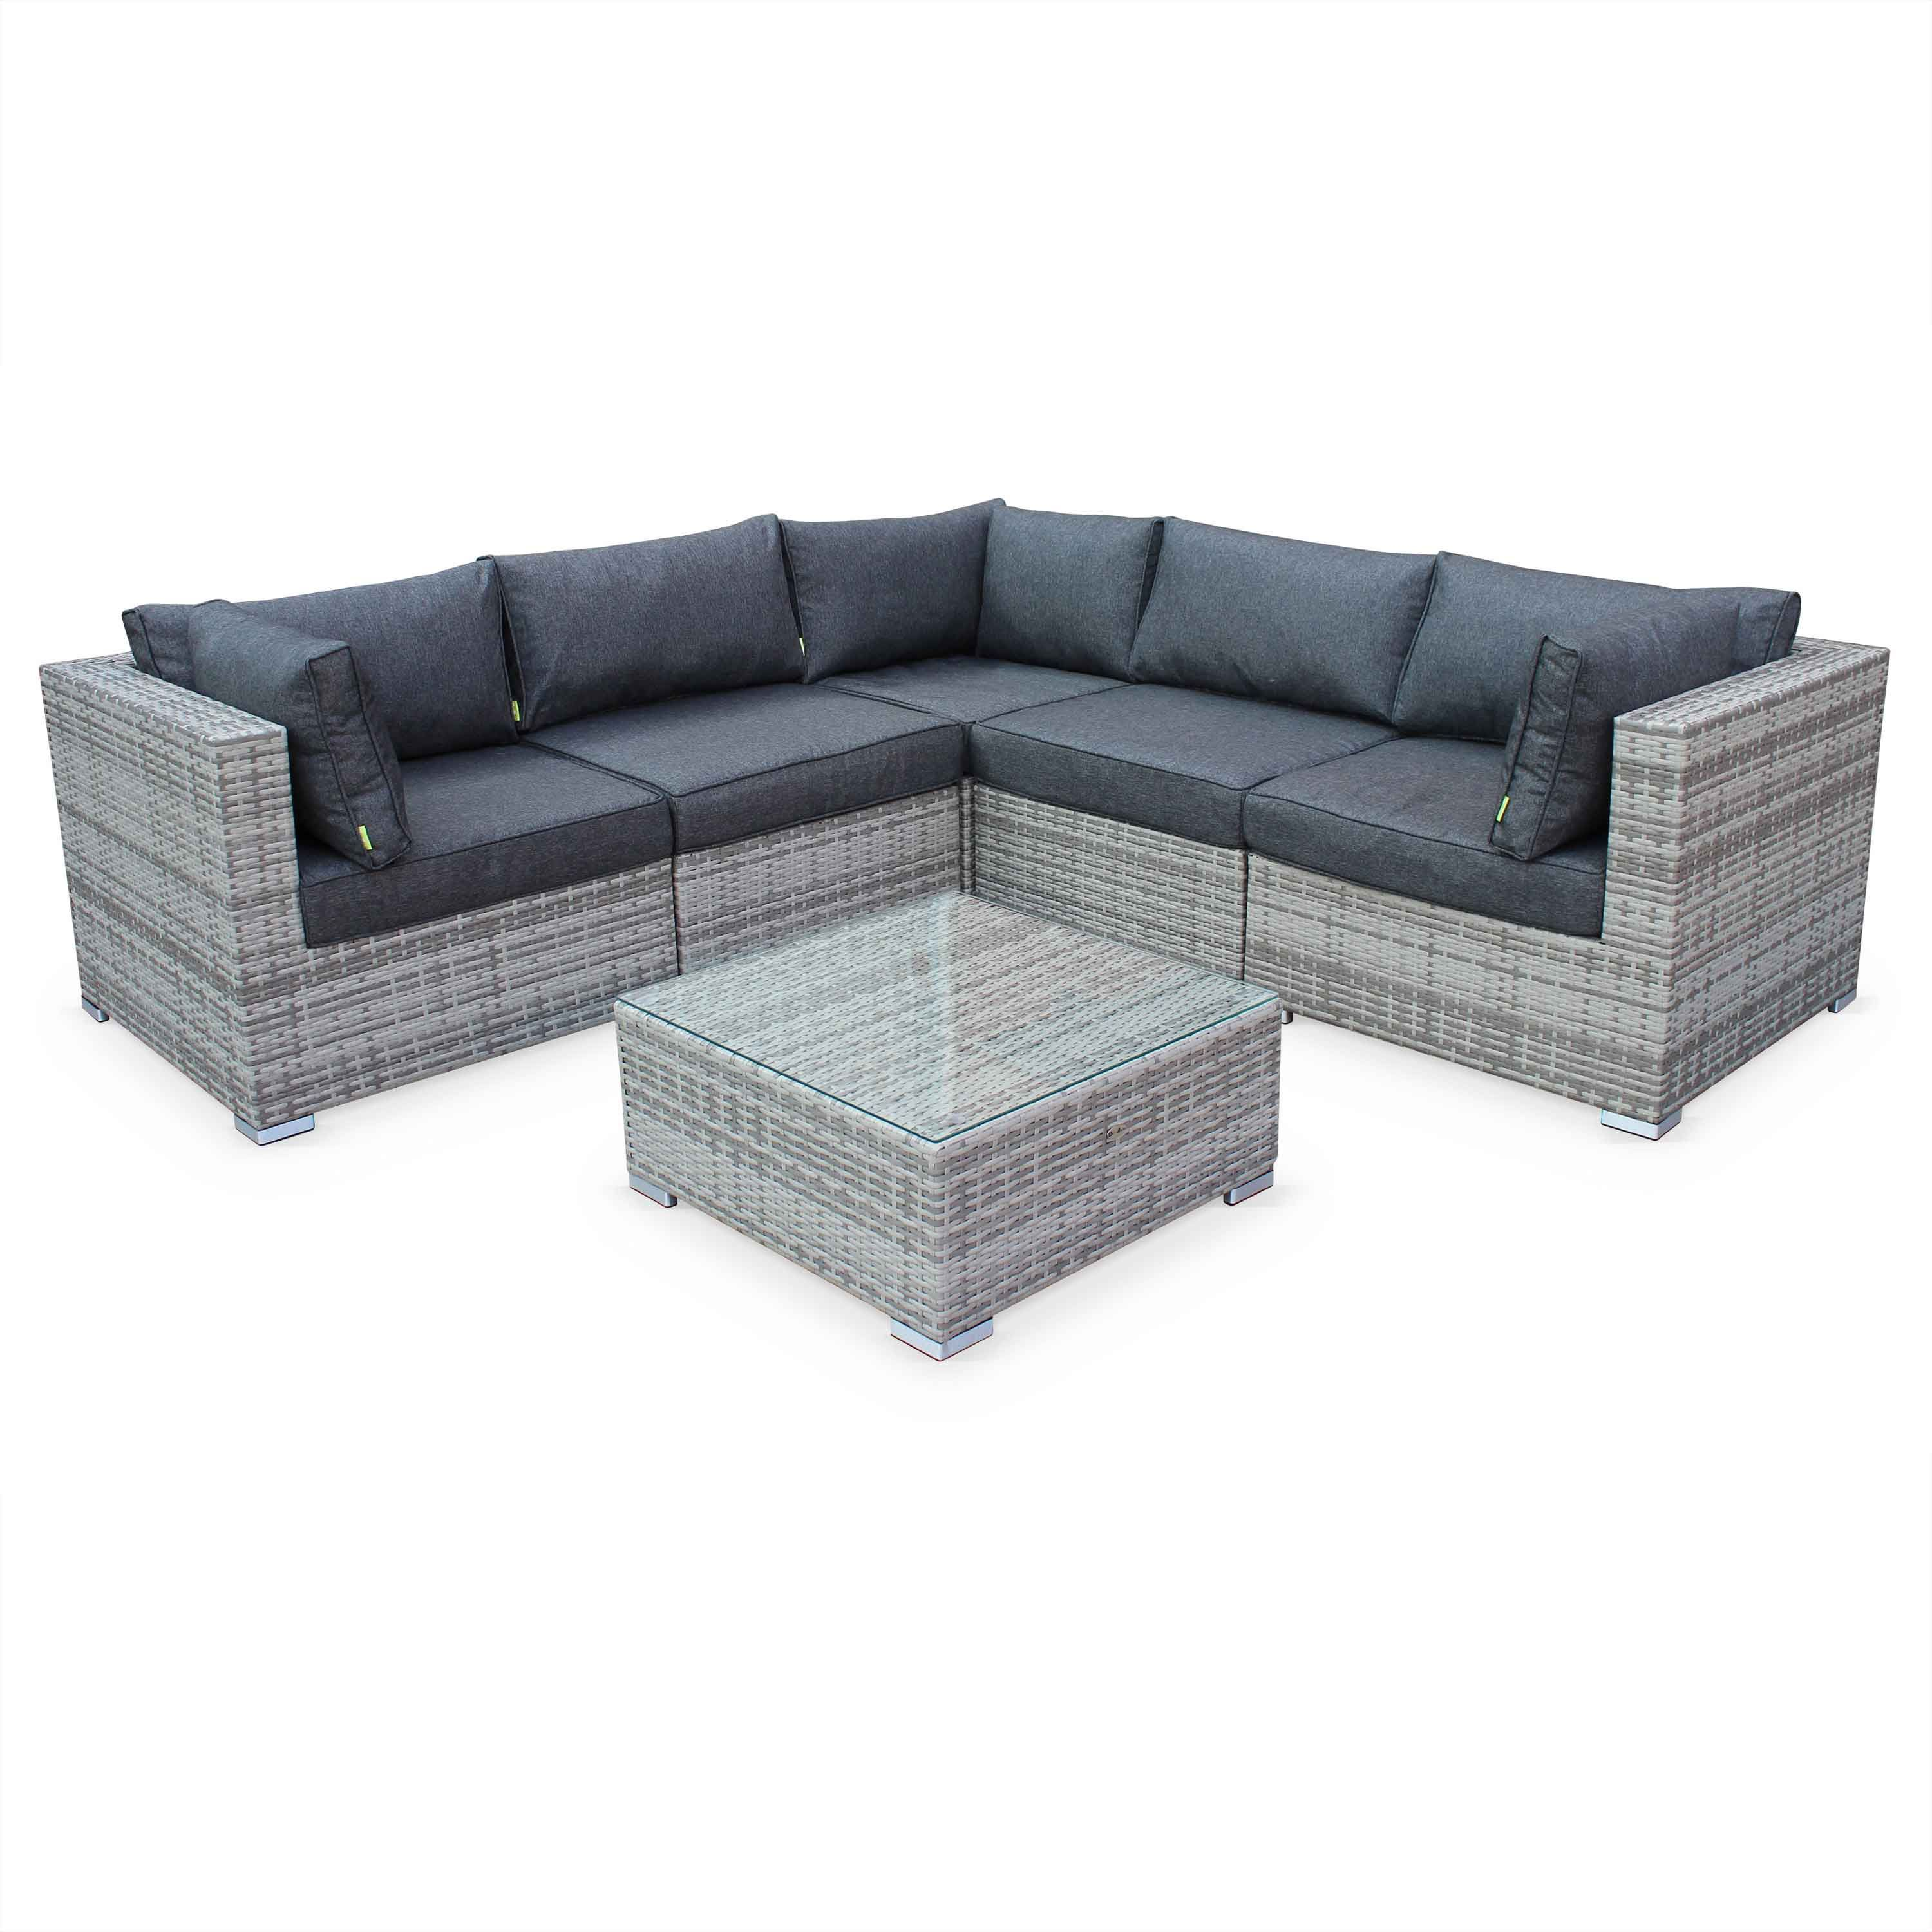 Malibu Garden Lounge Set Garden Sofa Set Outdoor Seating Areas Garden Sofa